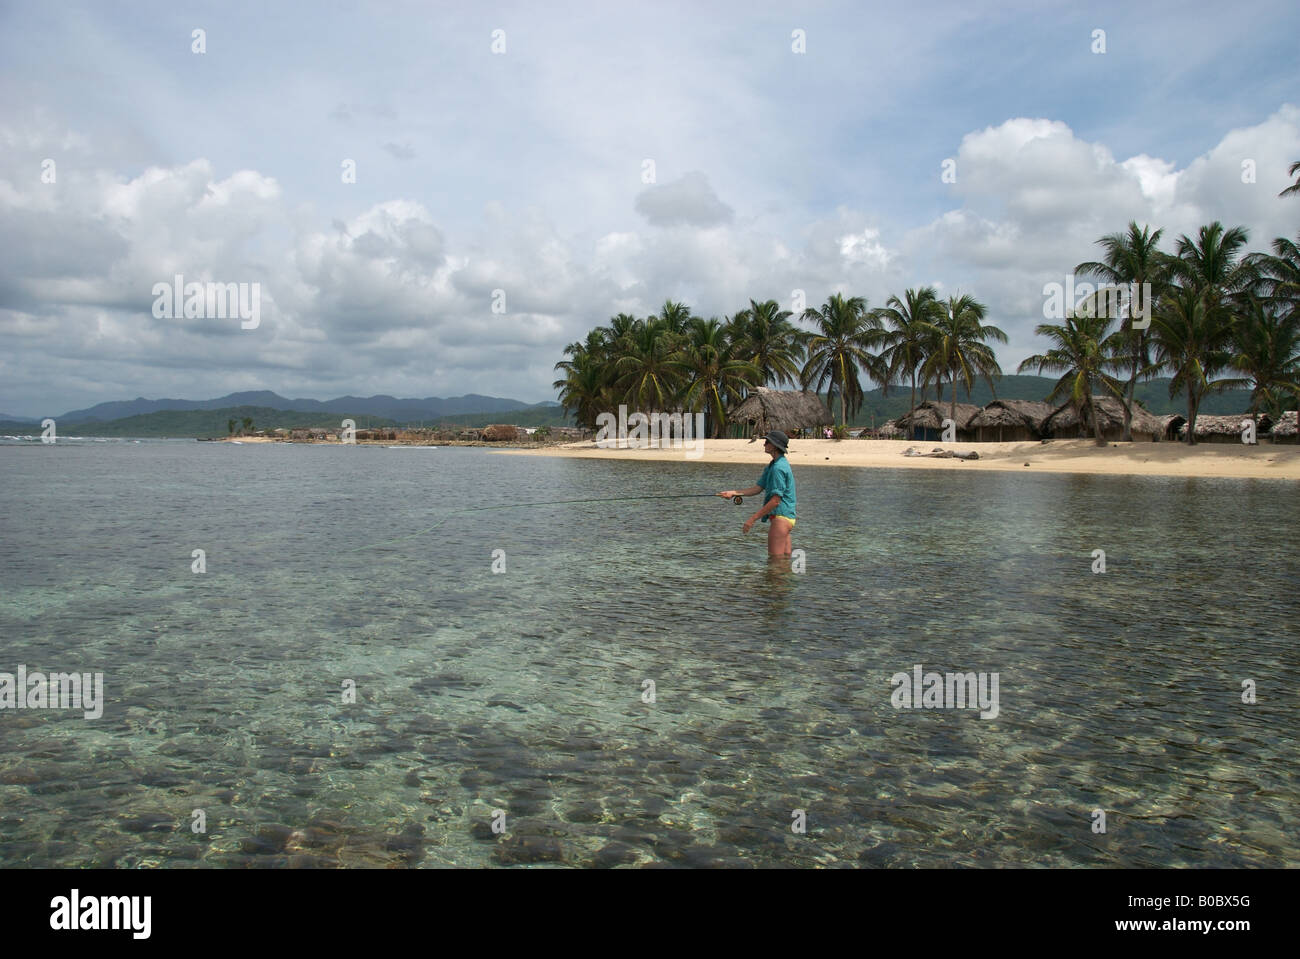 A woman fly fishing in front of cabanas on a remote island in the san blas islands panama - Stock Image